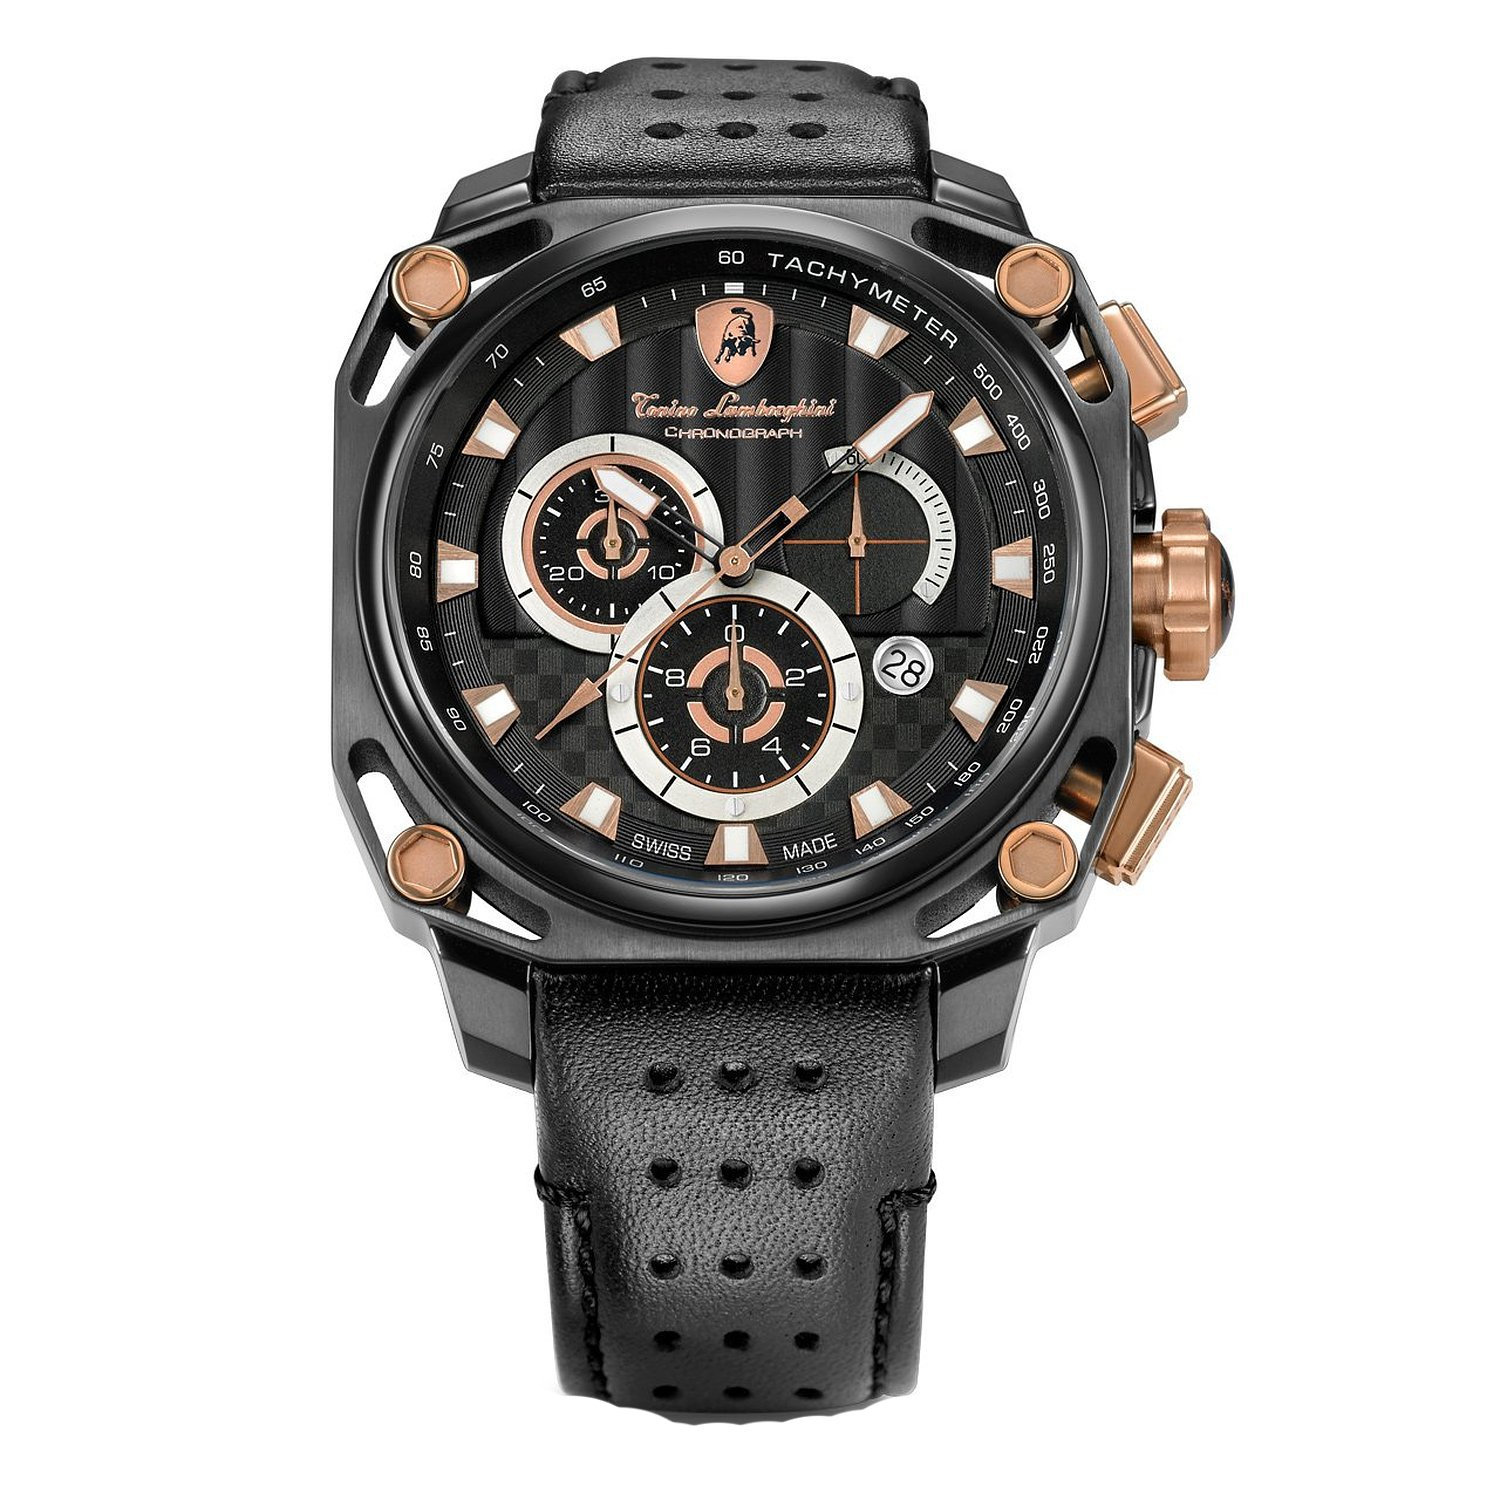 Tonino Lamborghini 4850 Black Gold 4 Screws Chronograph Watch by Tonino Lamborghini